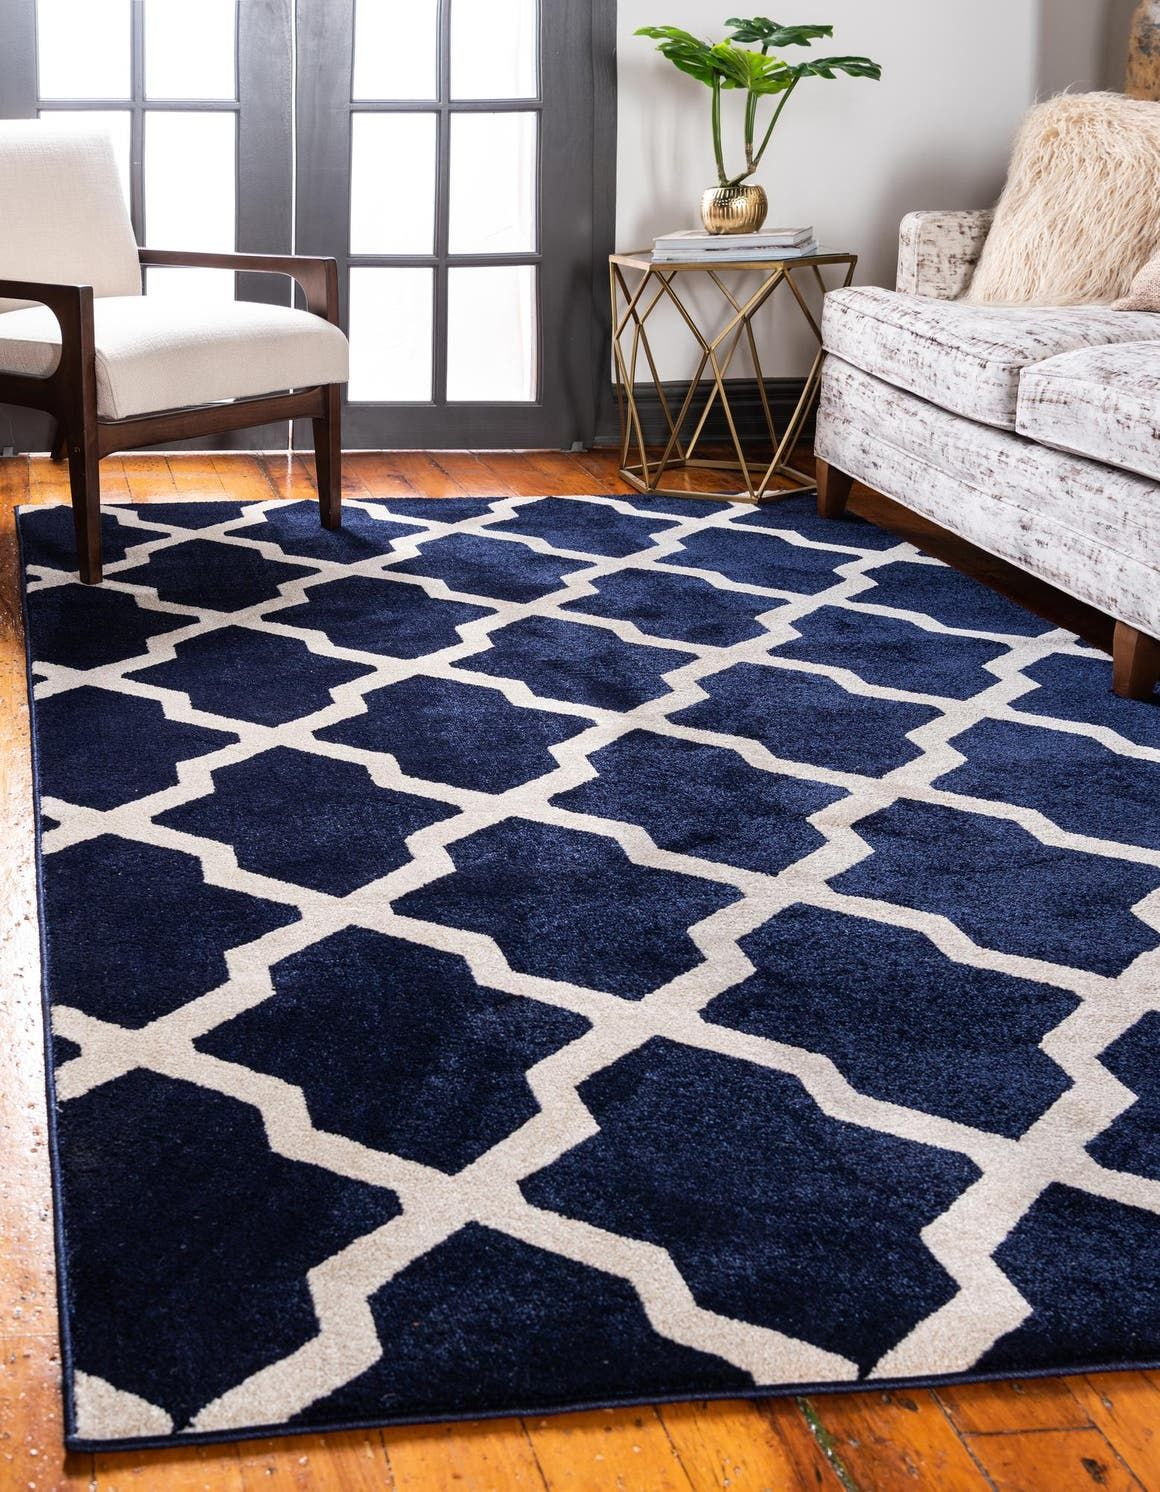 Lattice Navy Blue 3x5 Accent Rug In 2020 Large Area Rugs Area Rugs Navy Blue